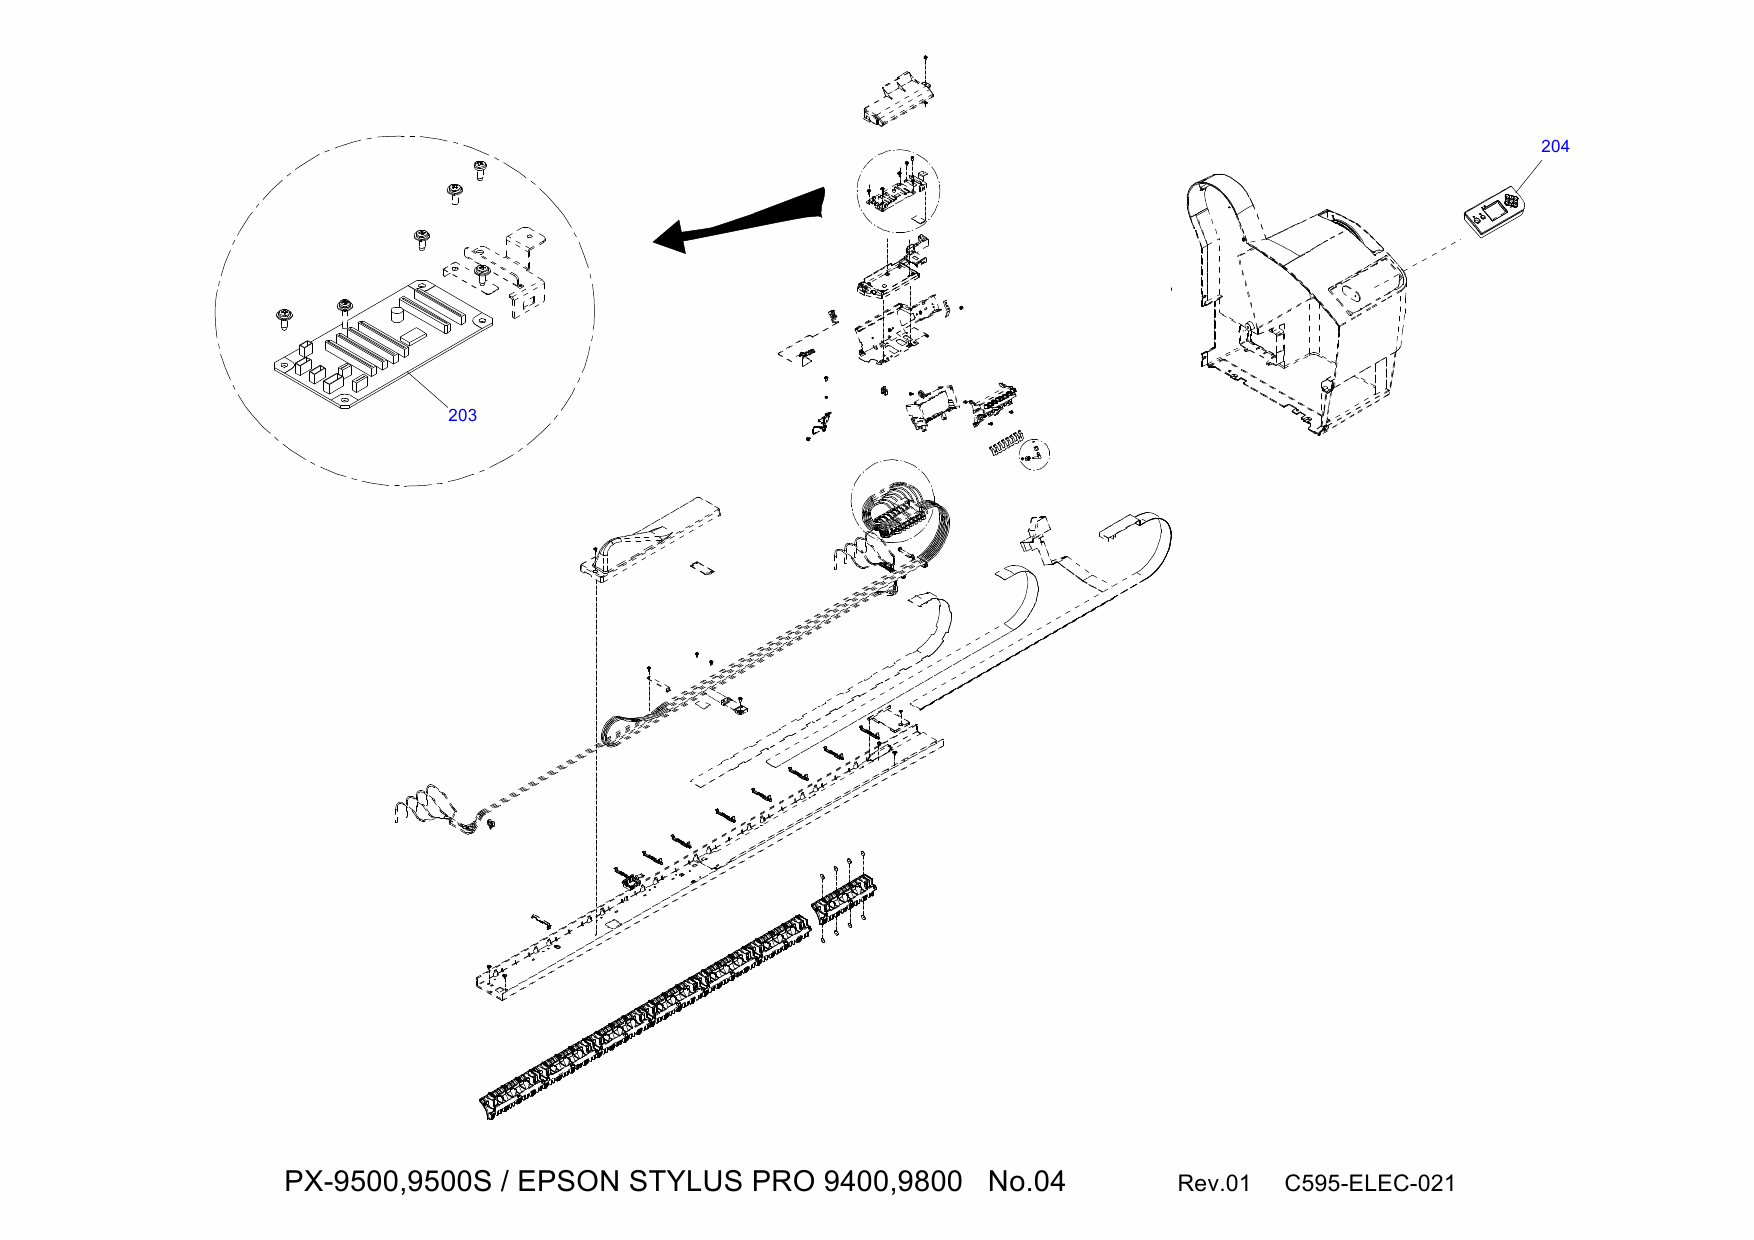 EPSON StylusPro 9400 9800 Parts Manual